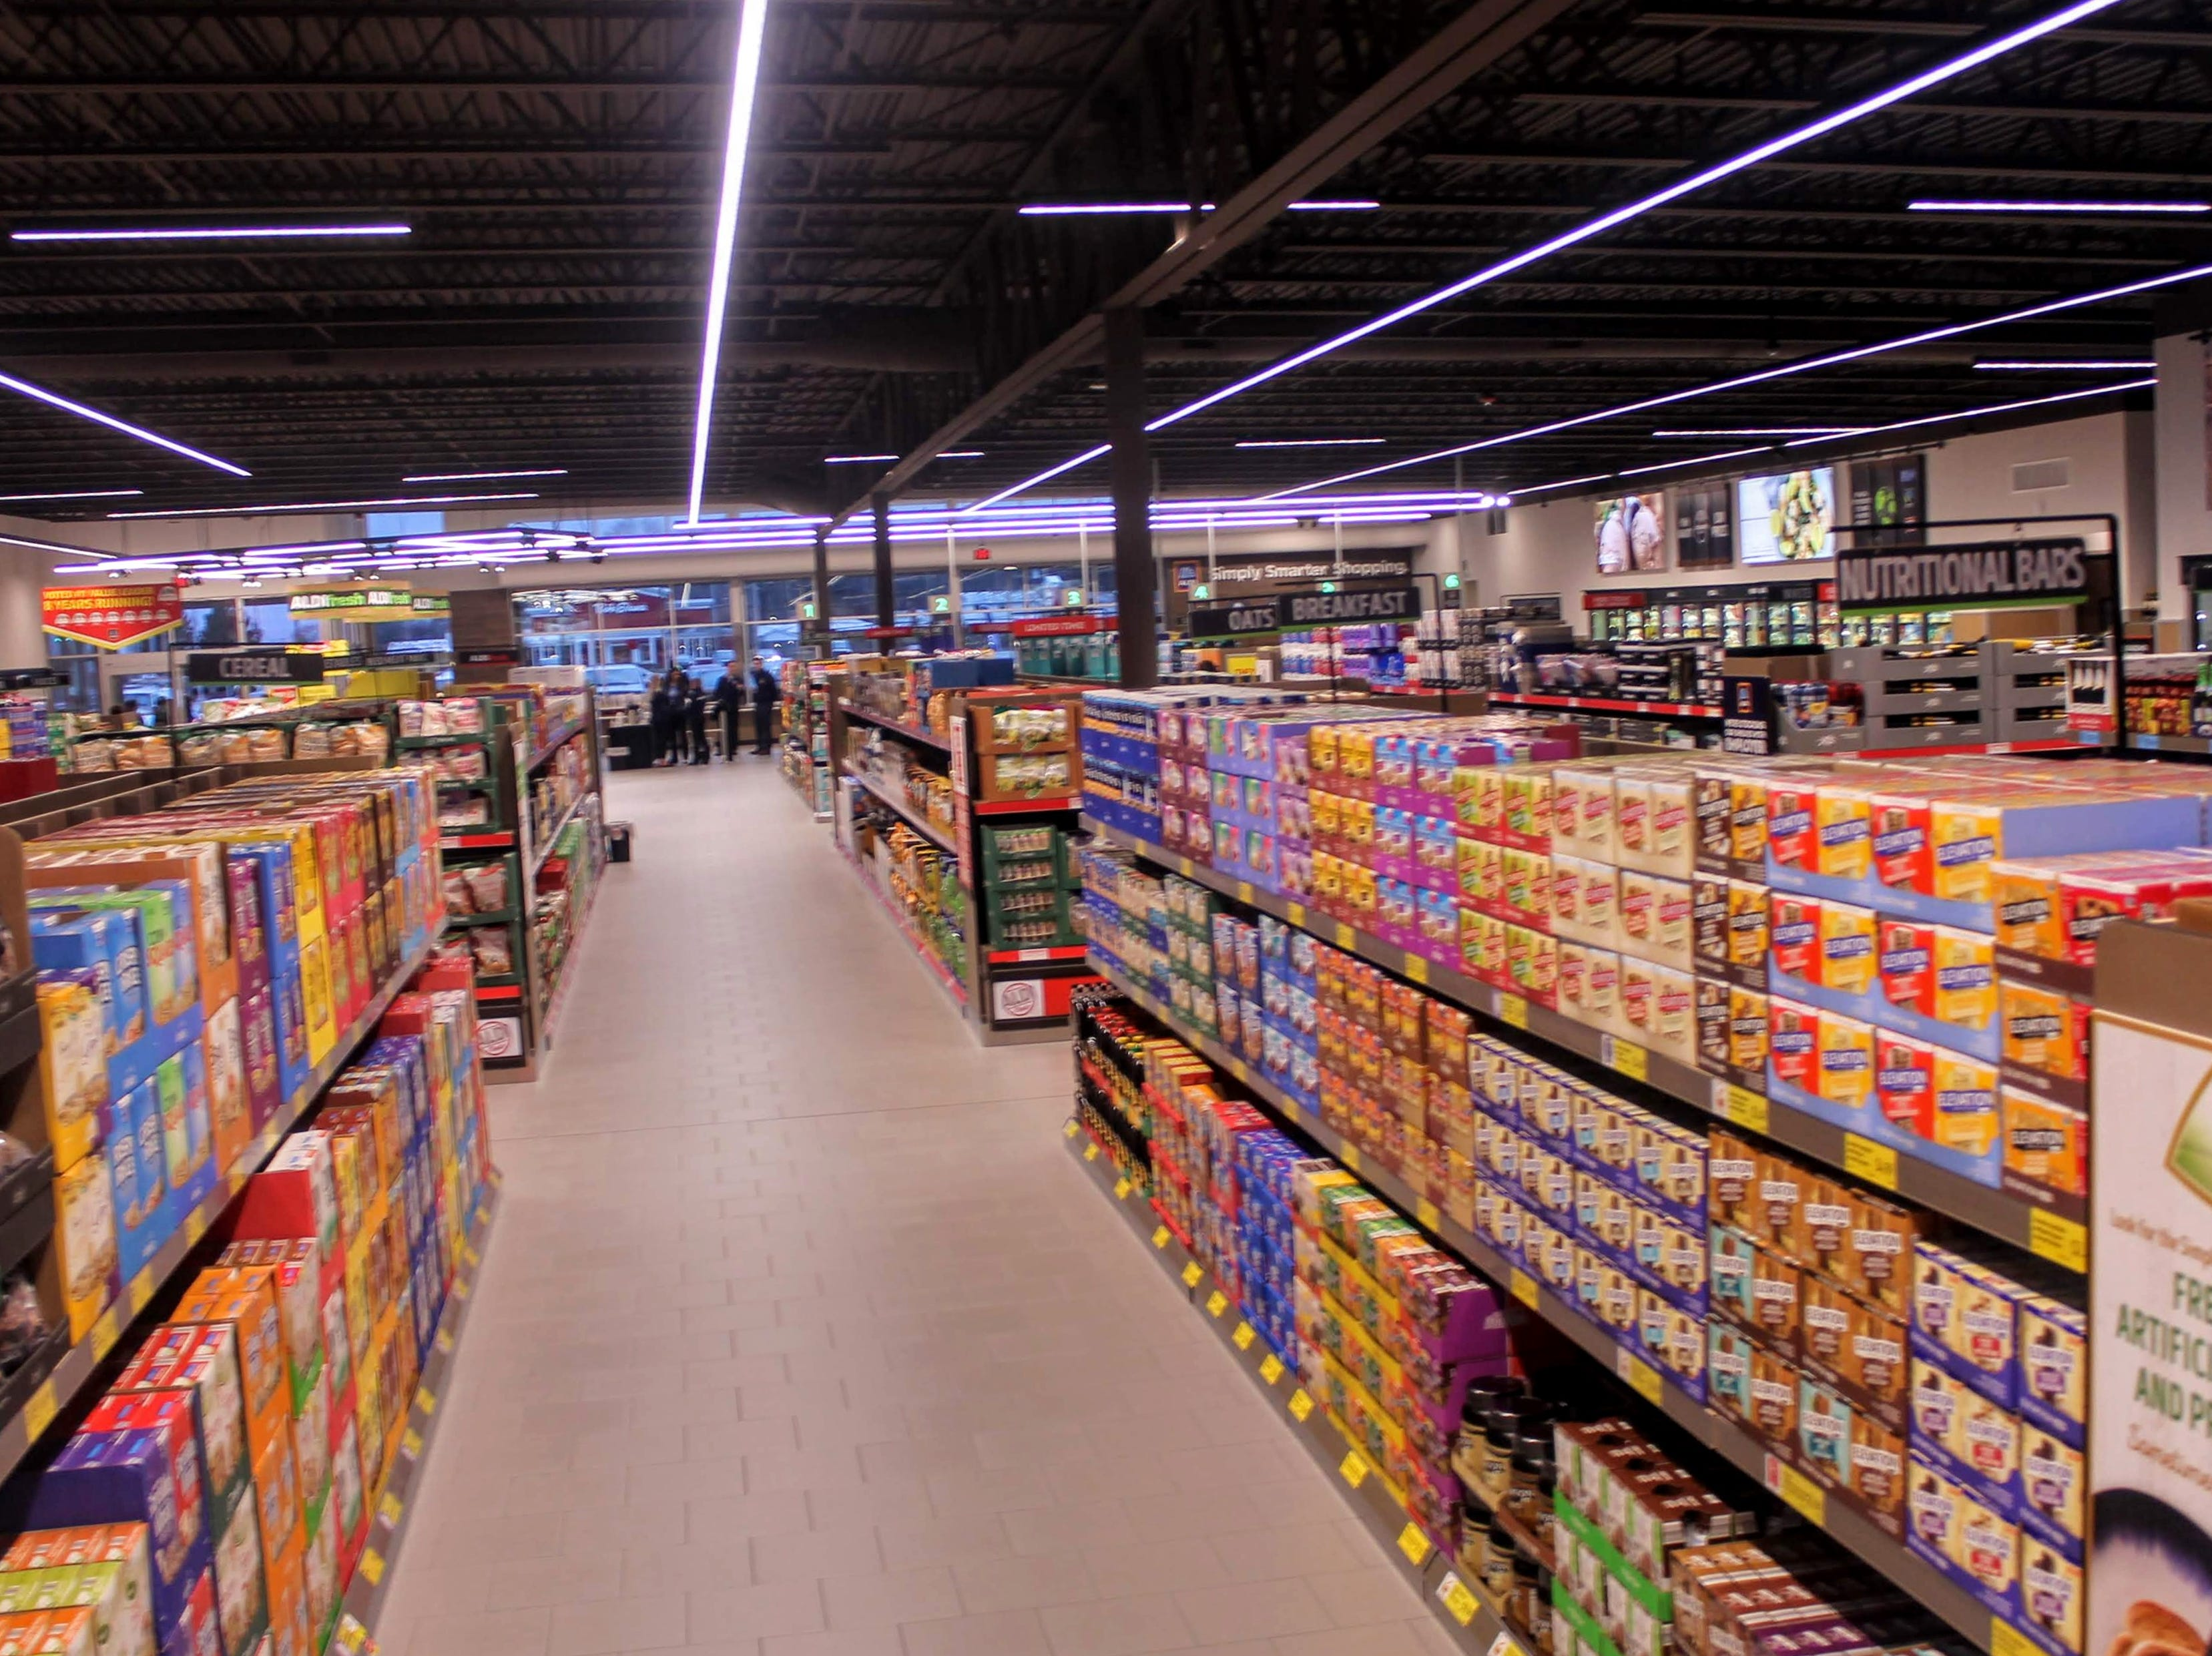 The inside of the 22,000 square foot store.